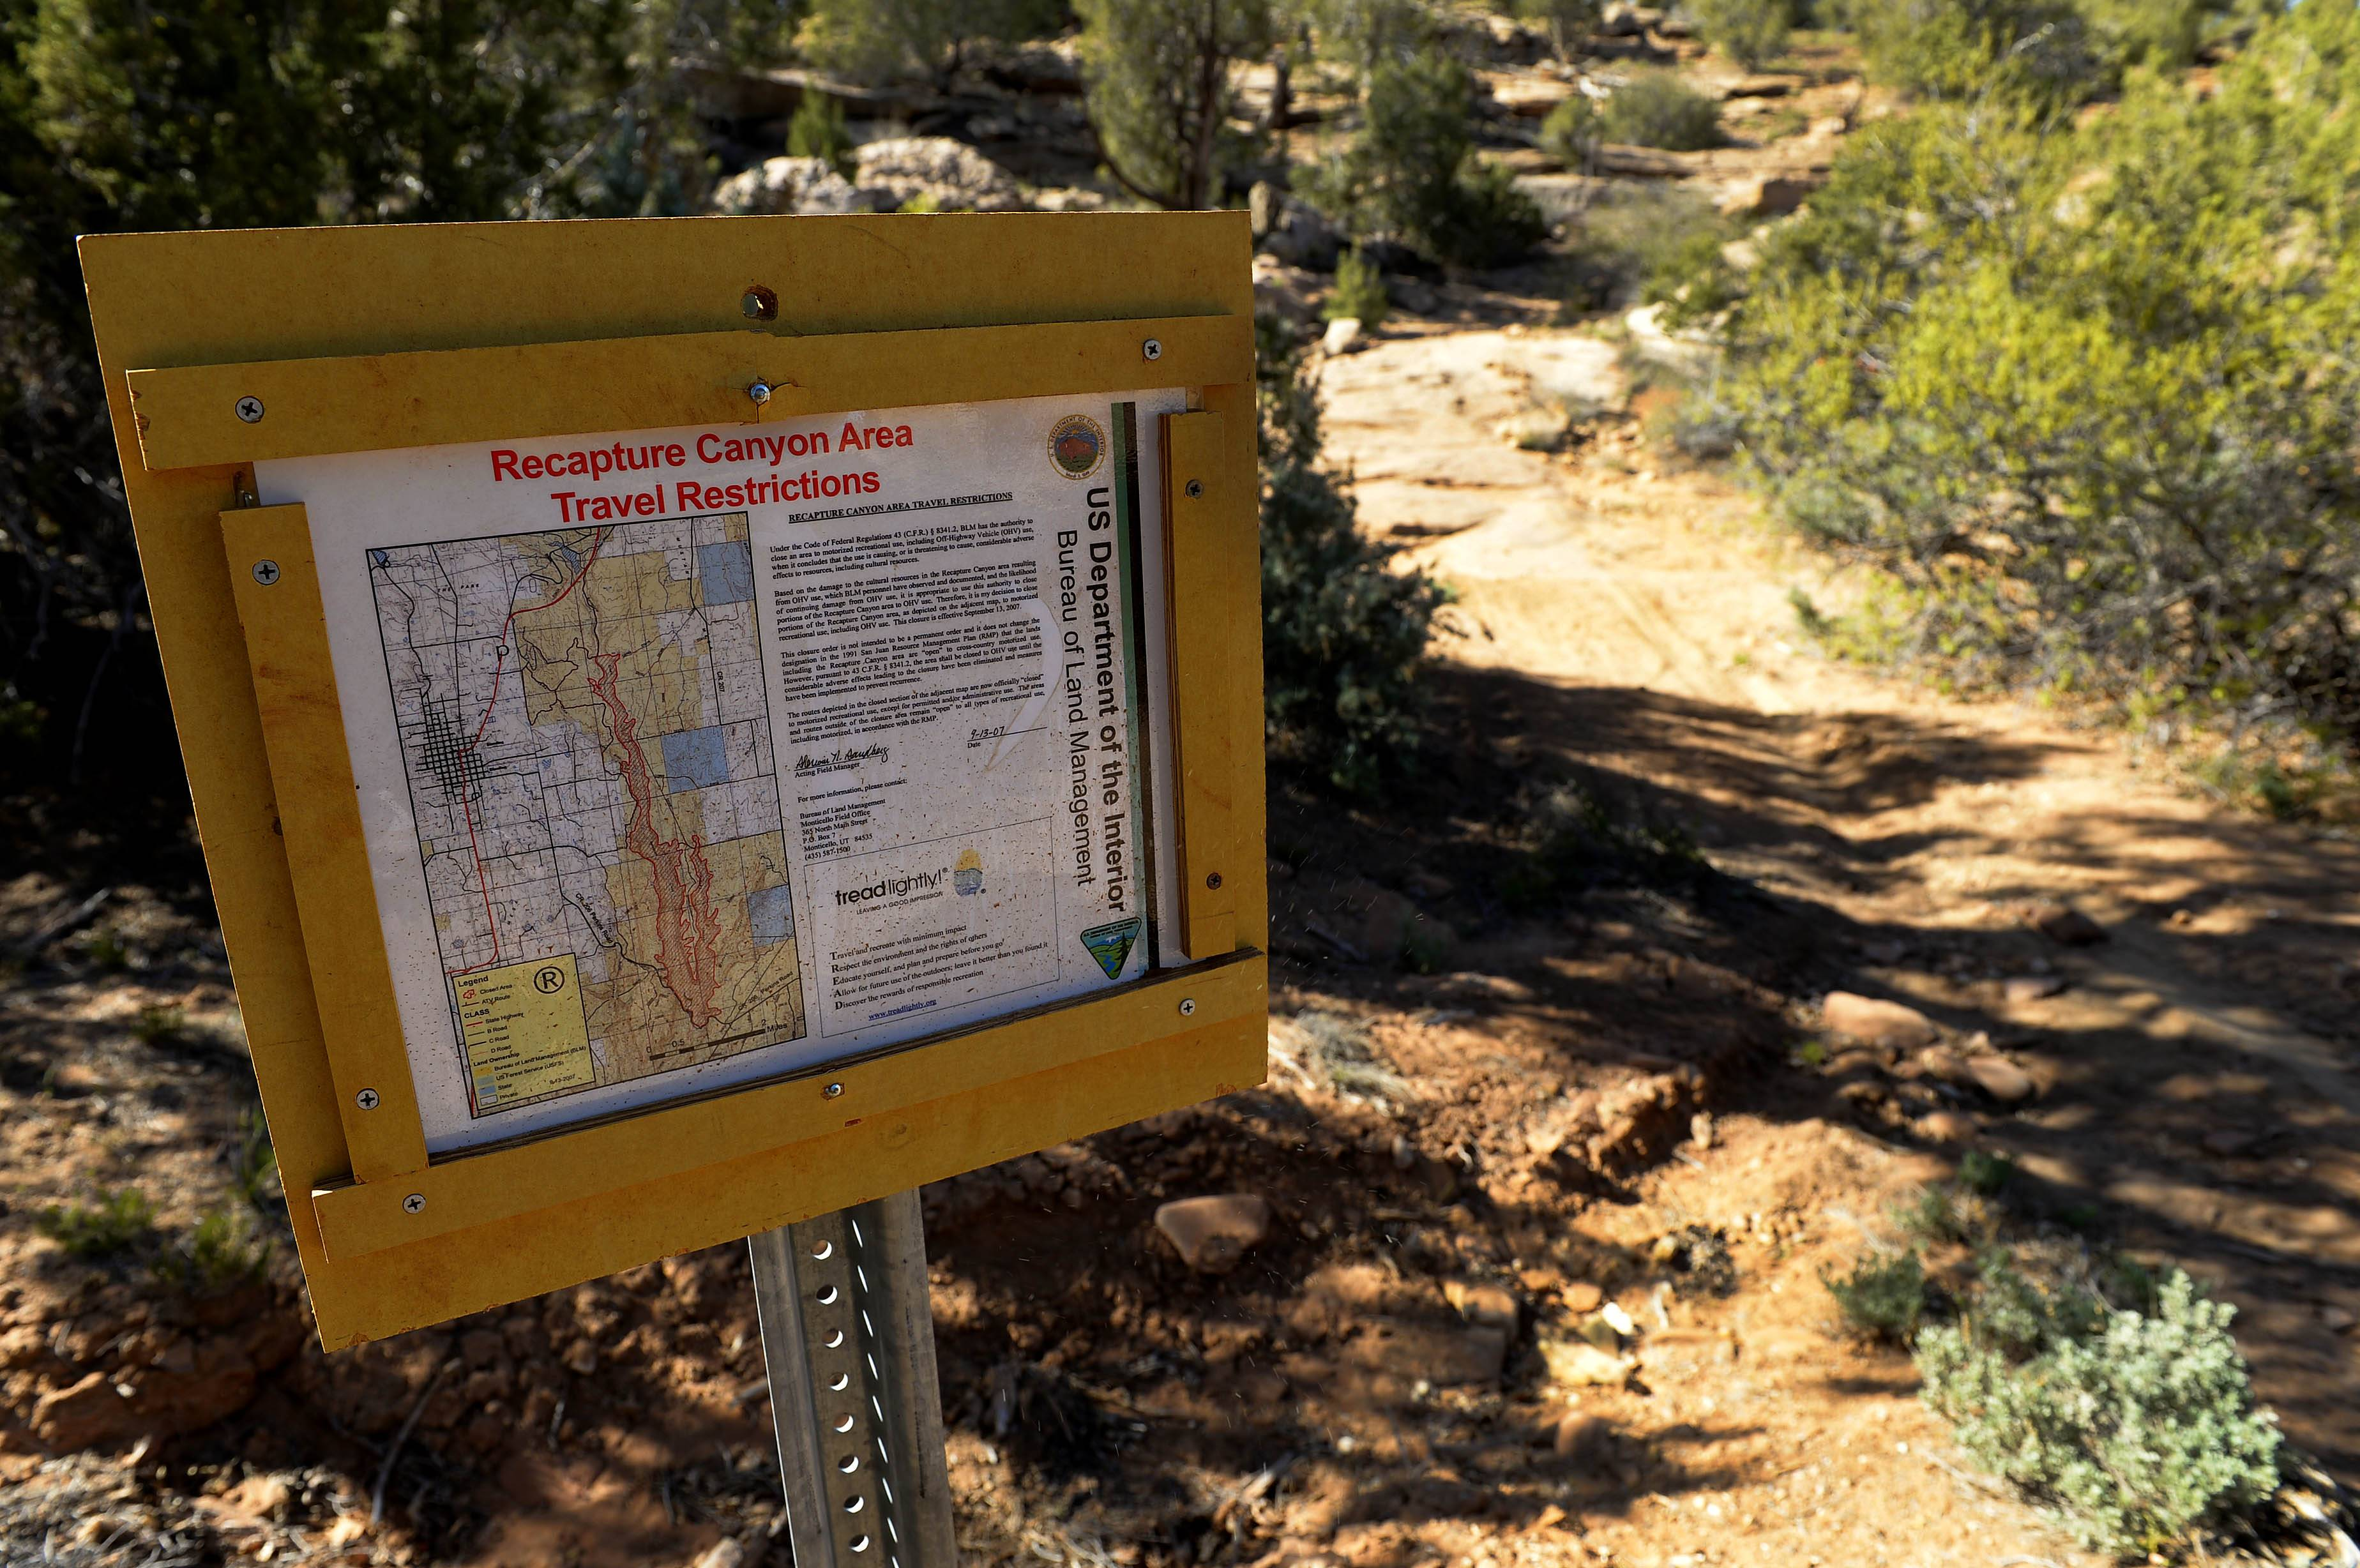 Signs detail travel restrictions and no motorized use throughout Recapture Canyon in Utah.